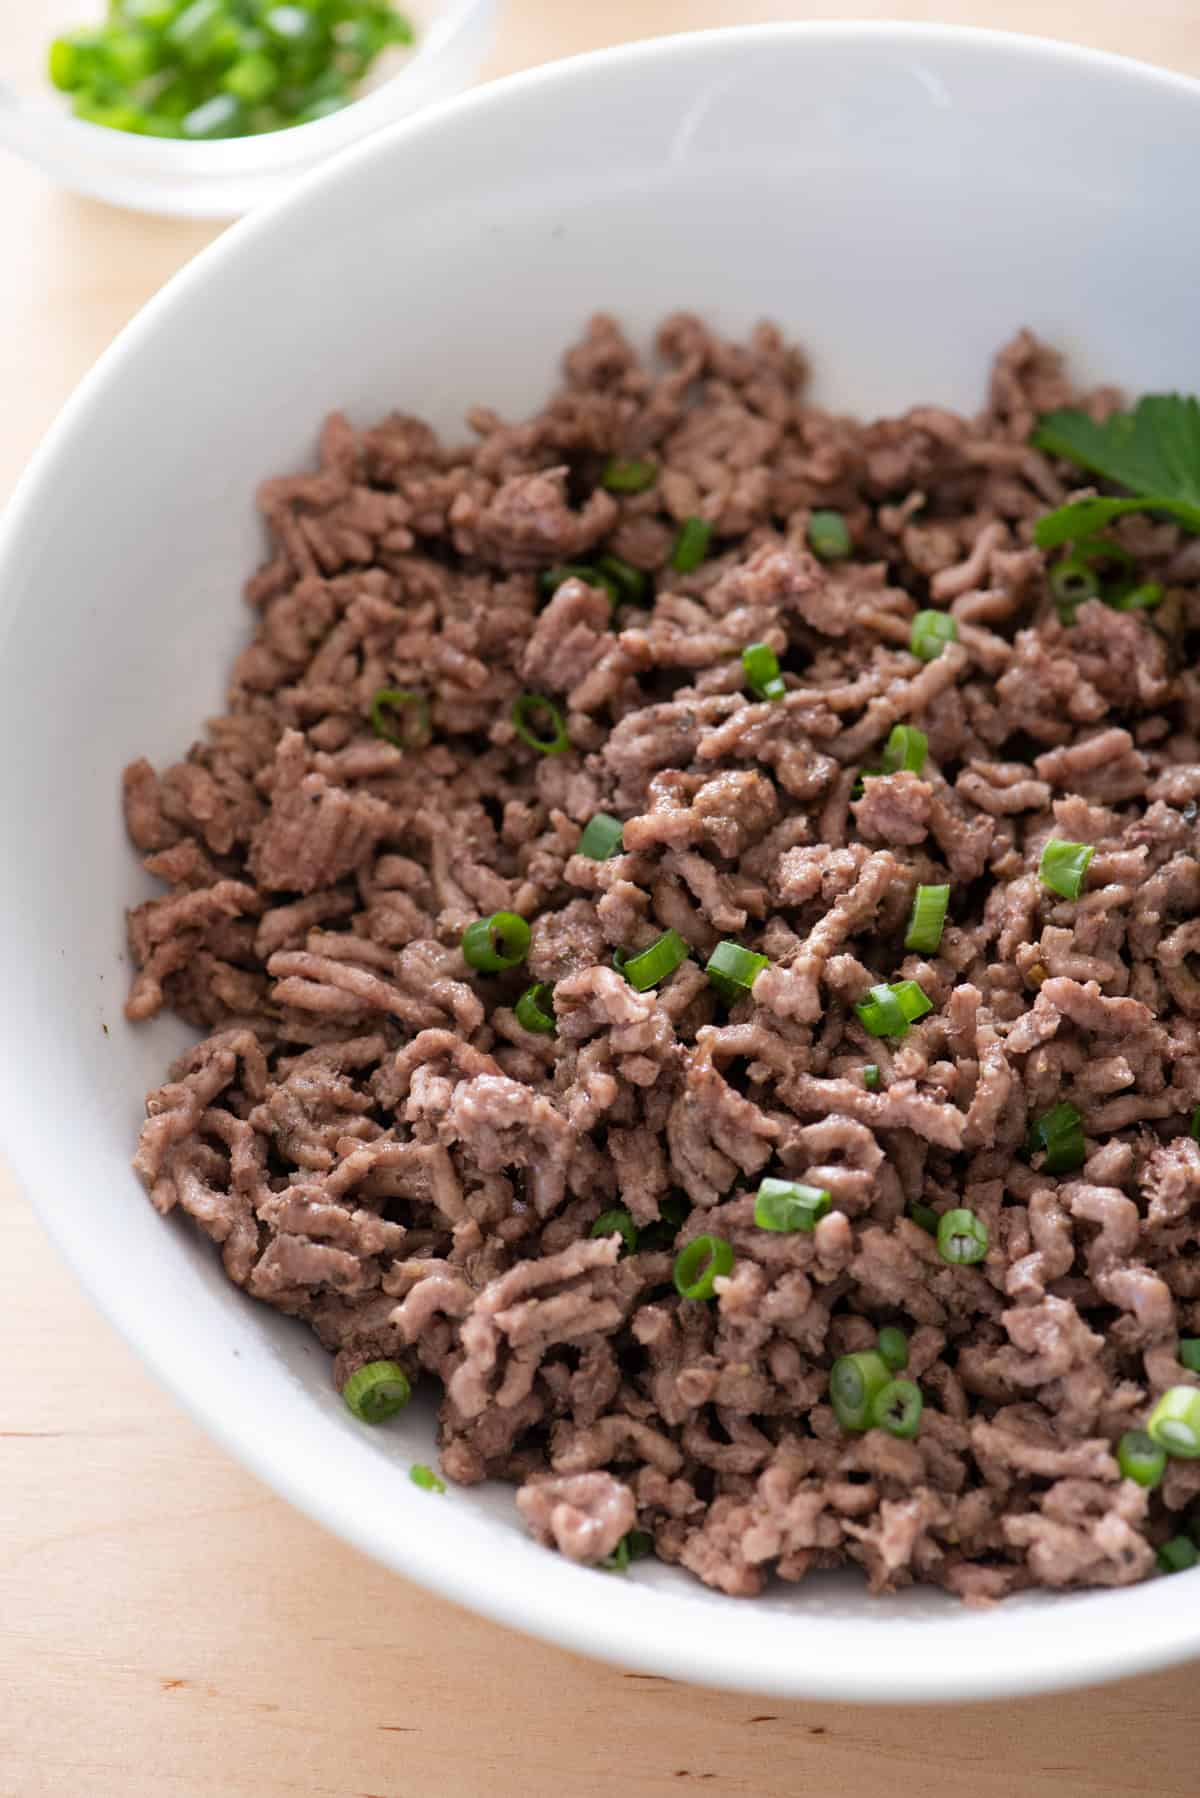 Instant pot ground beef served in large white bowl